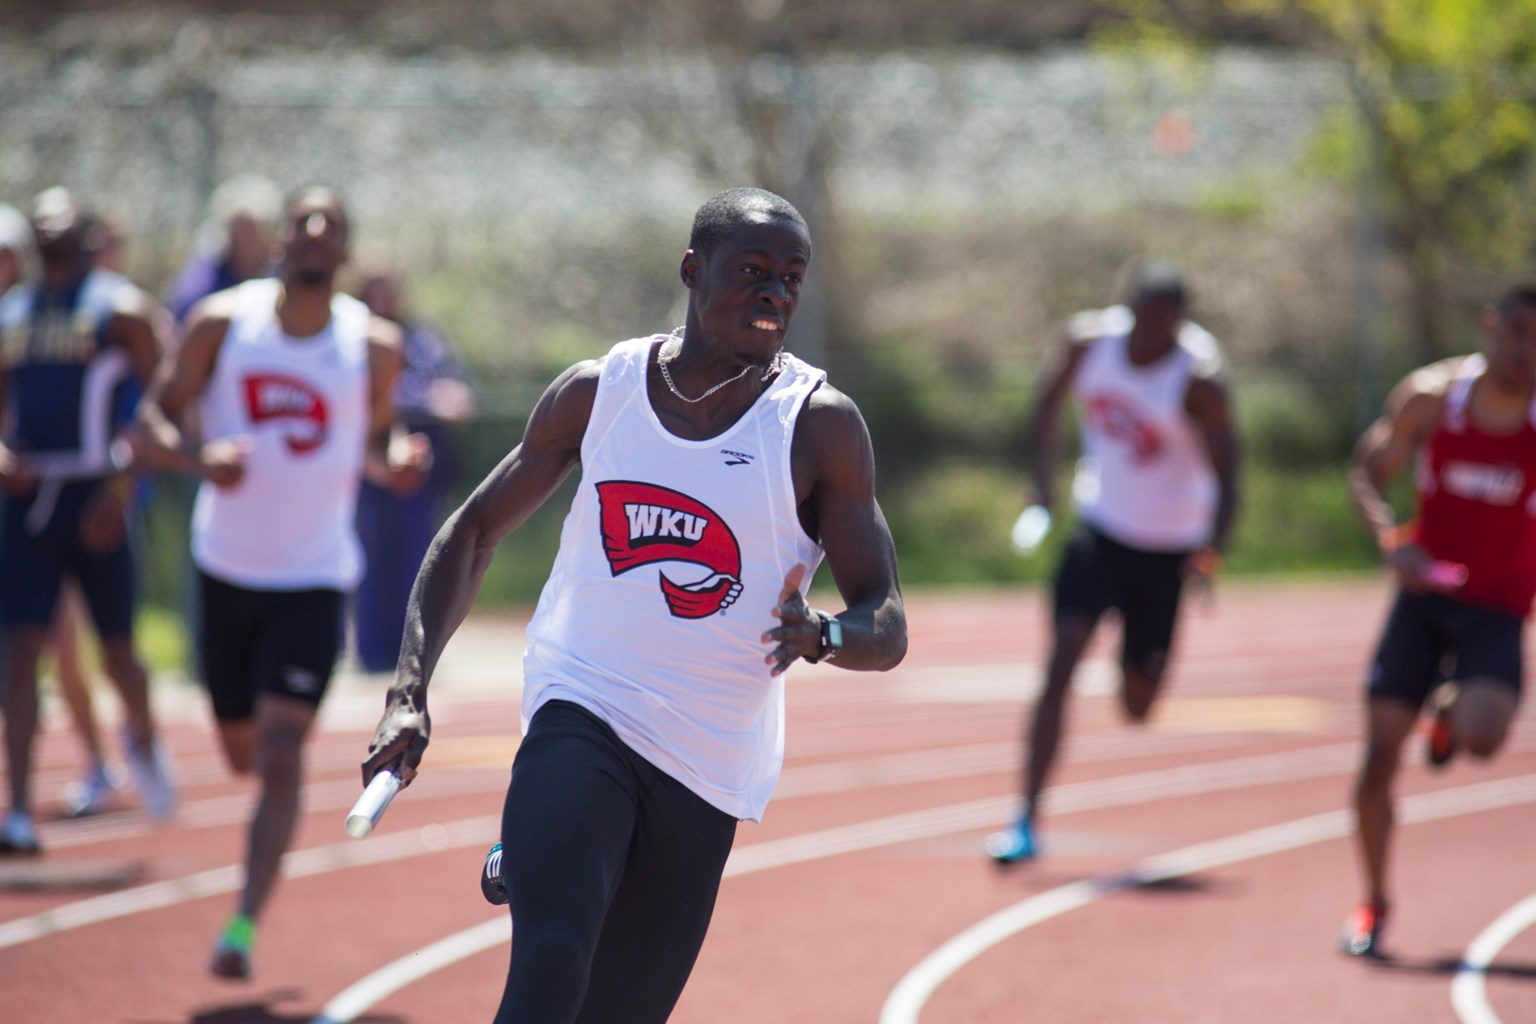 Western Kentucky University Athletics - Us track and field map my run